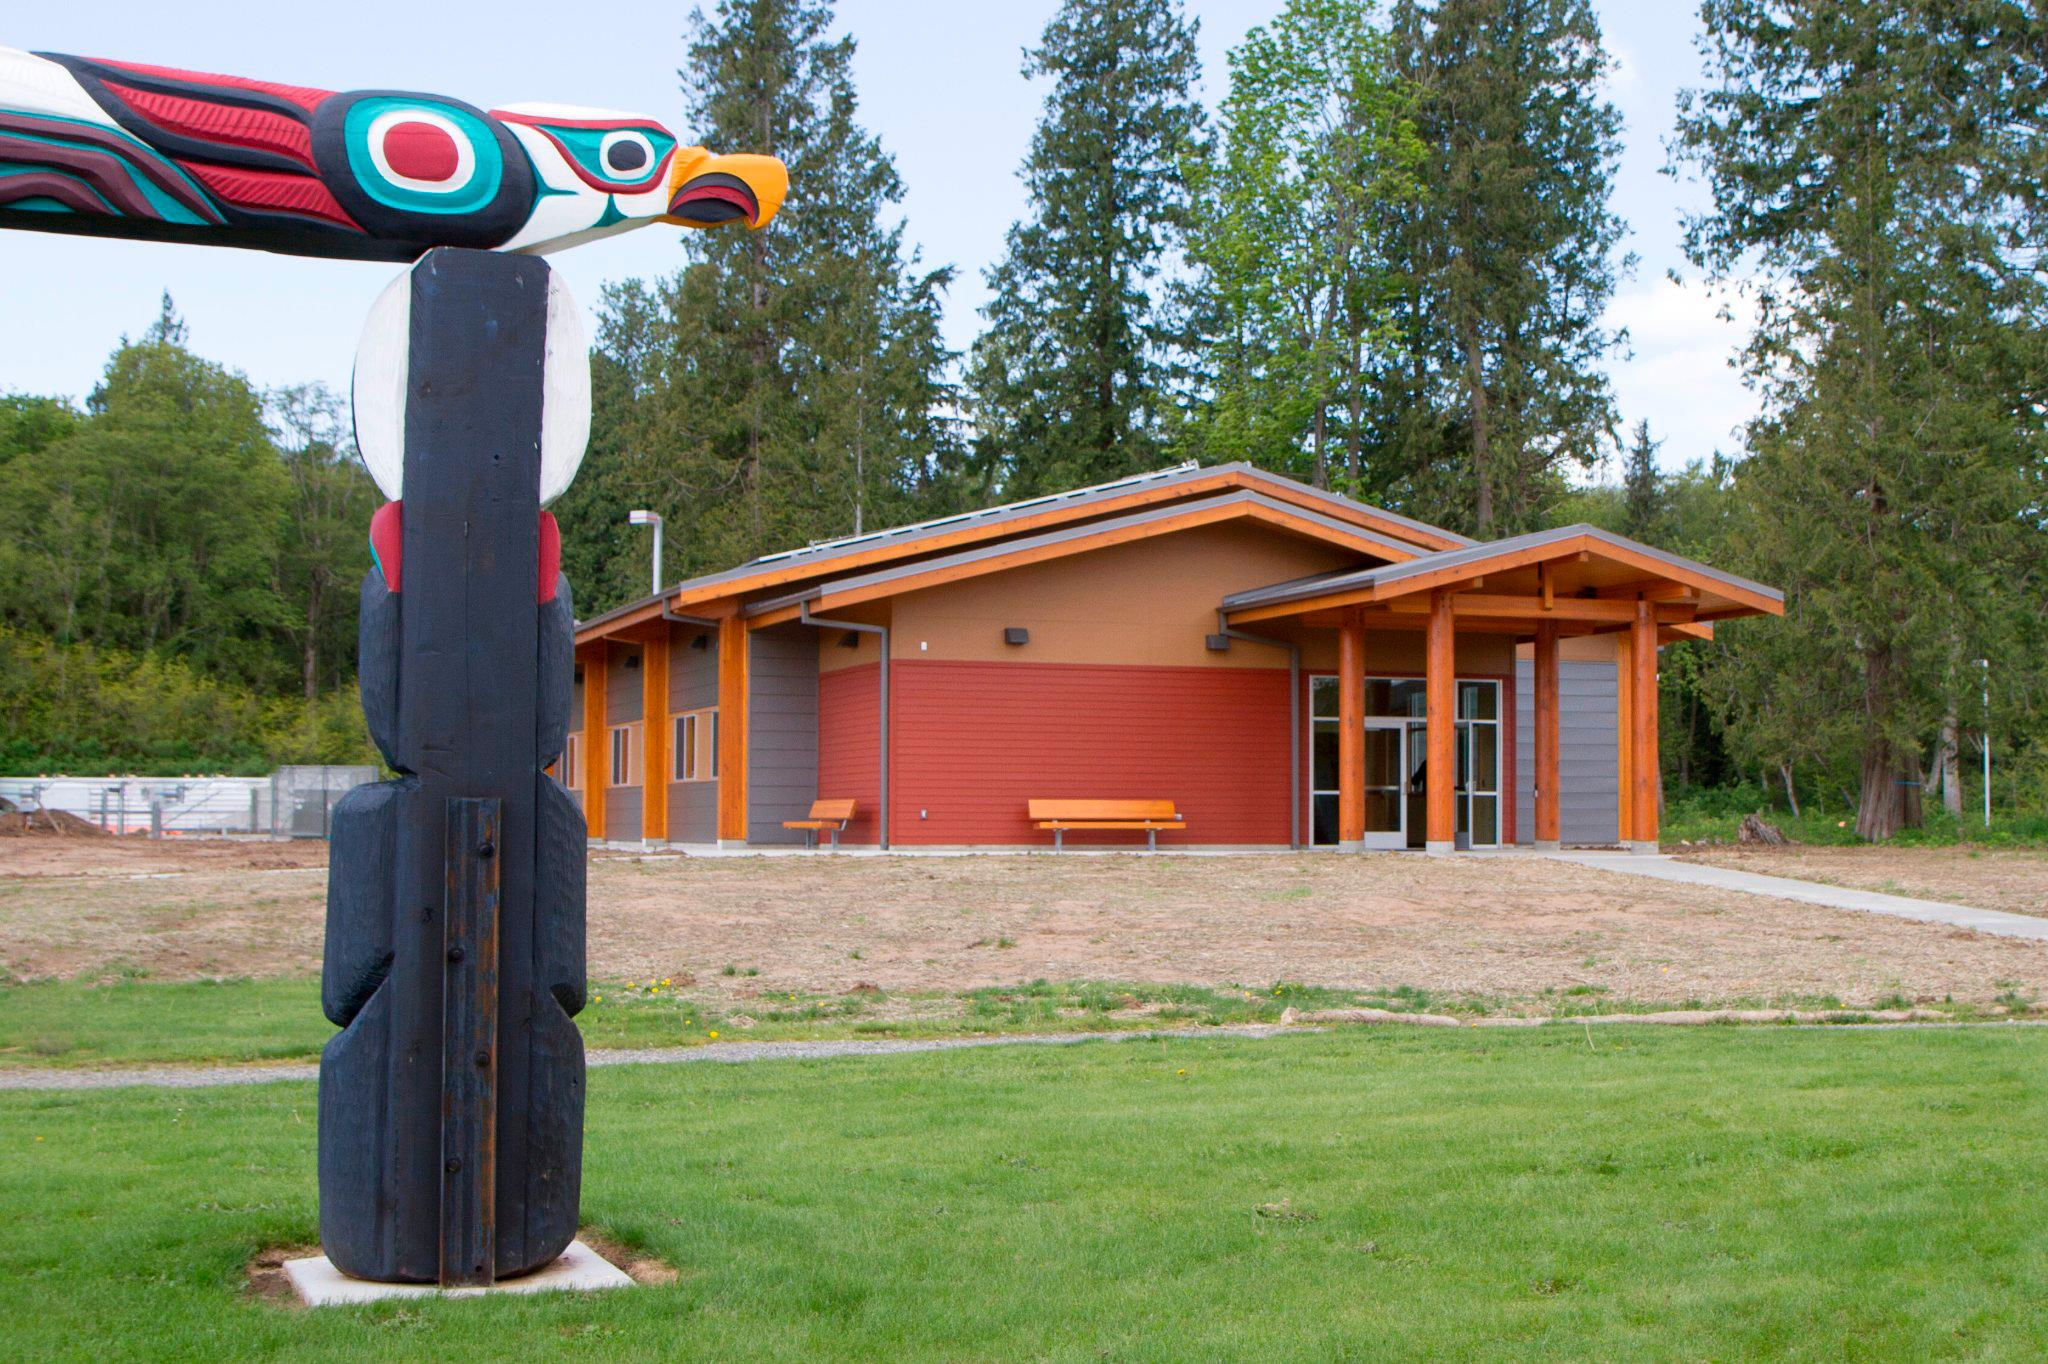 Tim Ballew: Northwest Indian College builds on tribal traditions